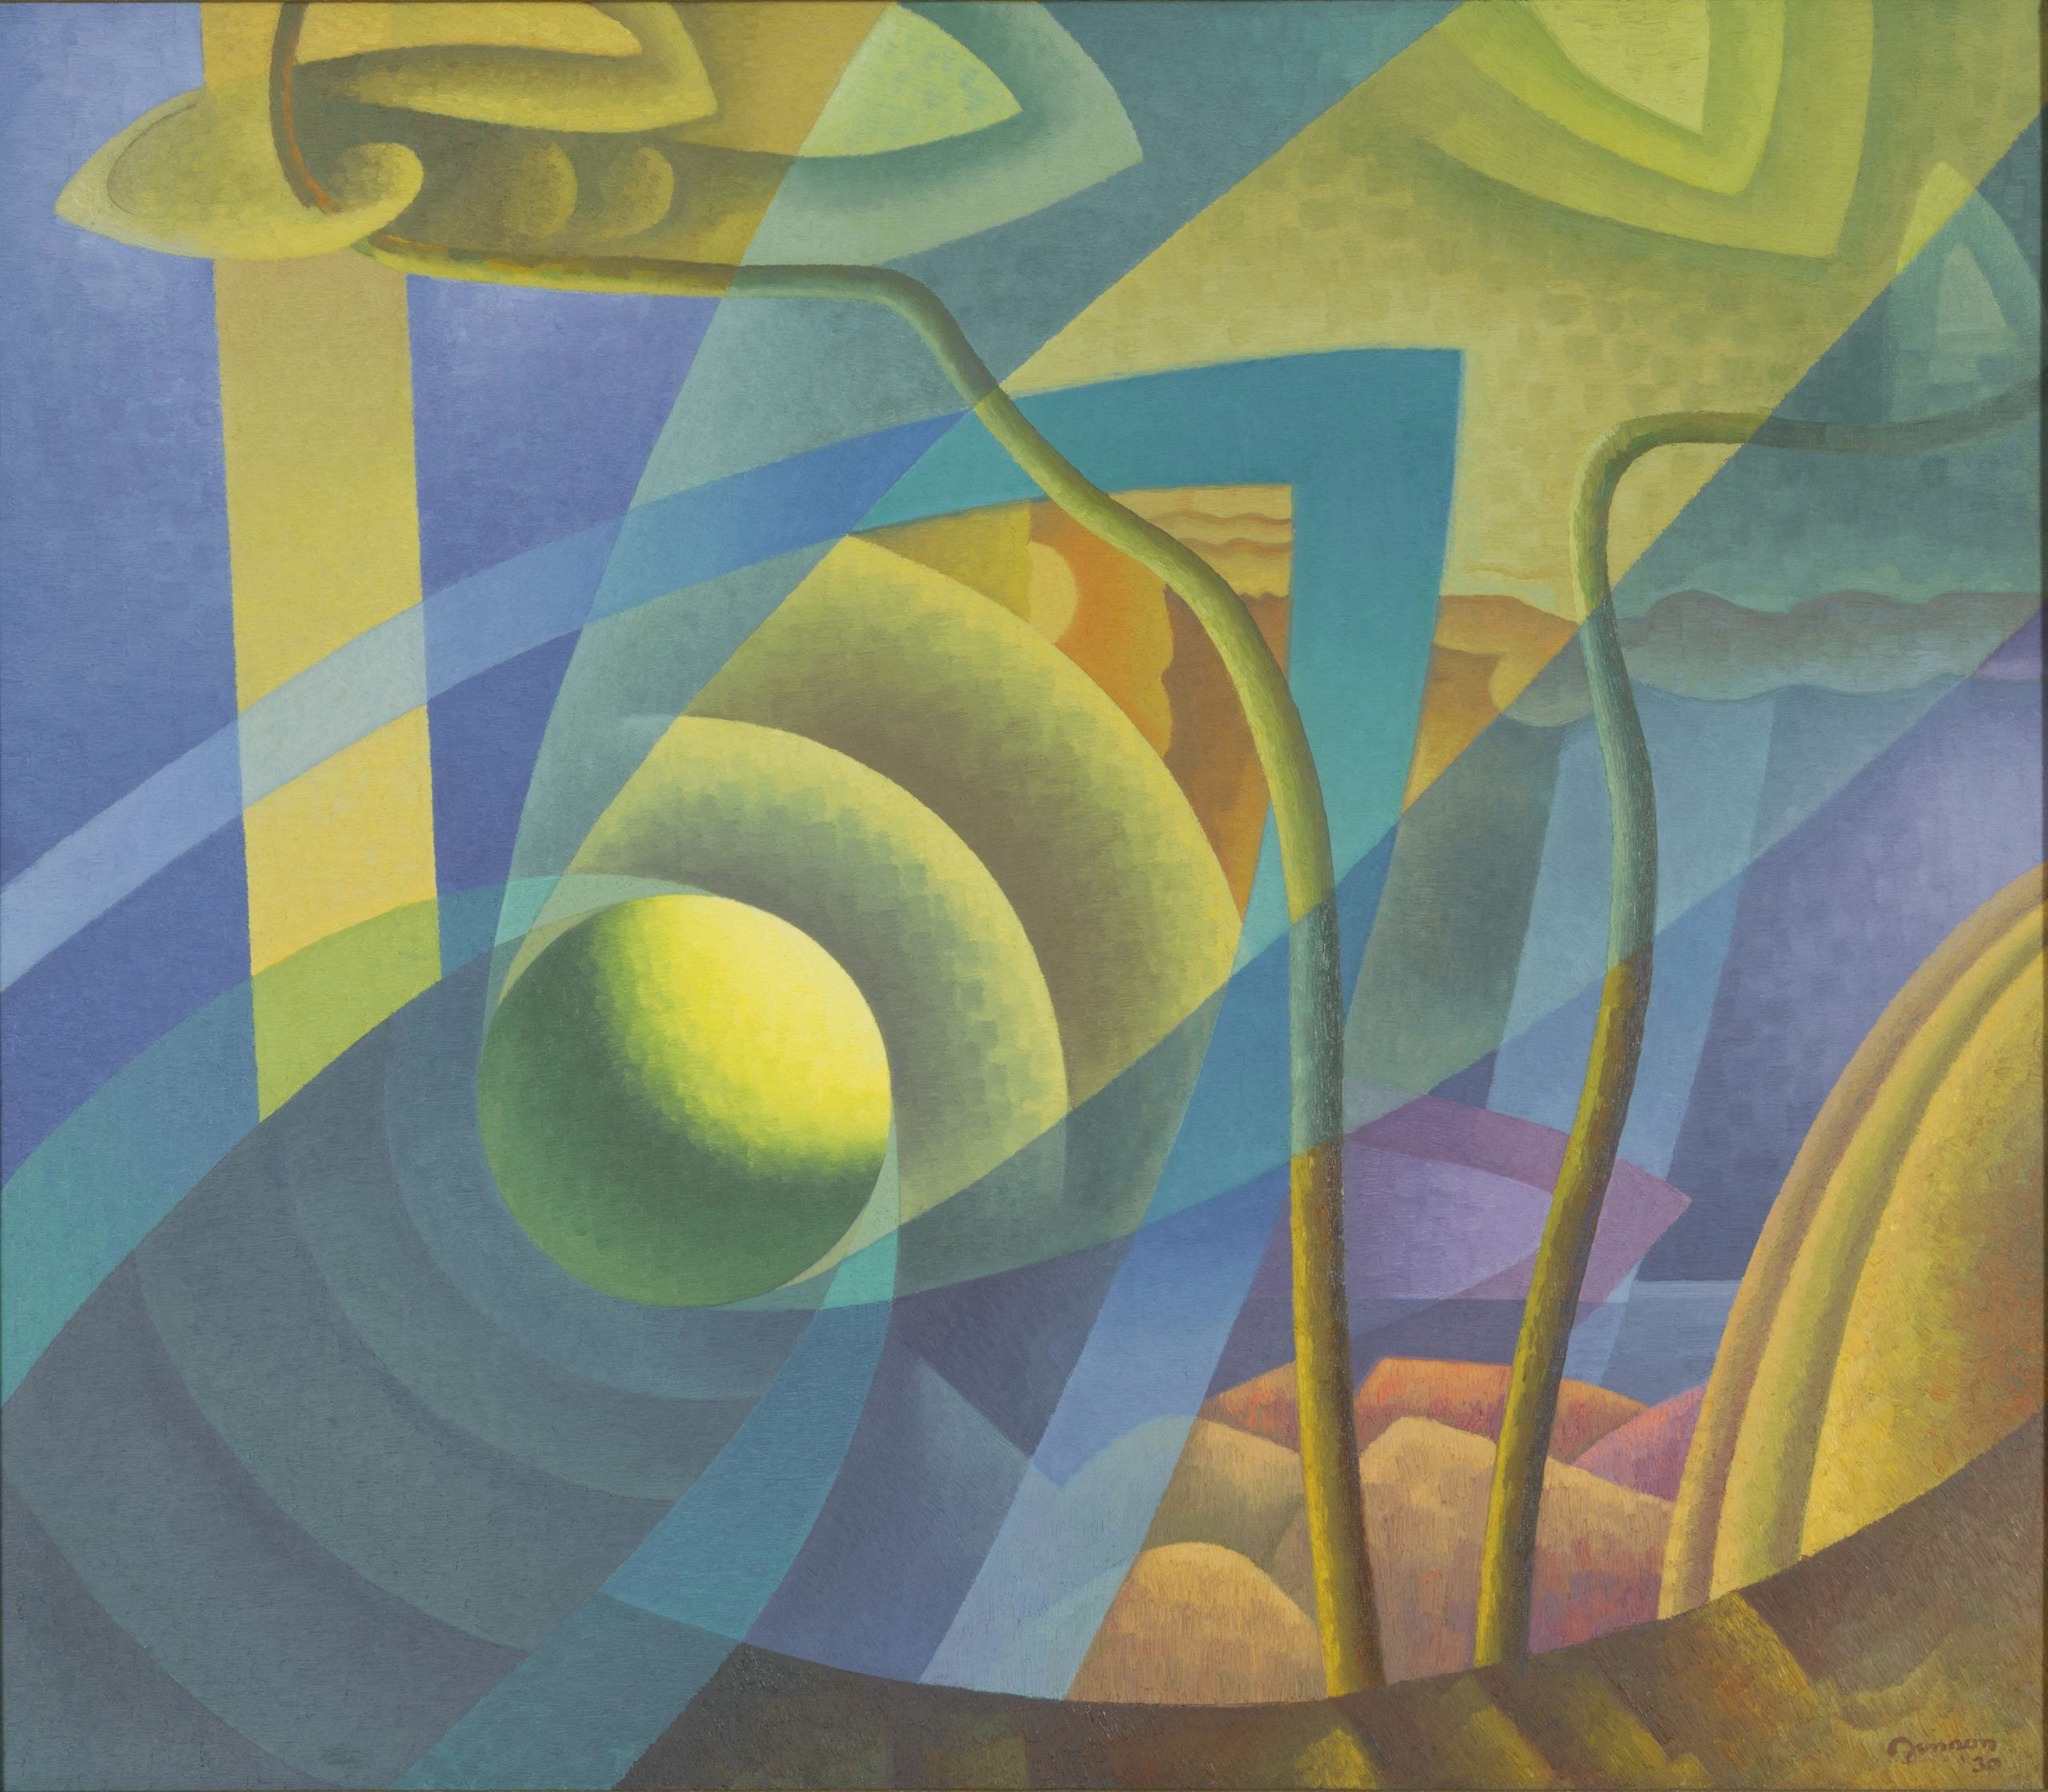 Time Cycle (Morning), 1930, Oil on canvas, Bequest of Raymond Jonson, Raymond Jonson Collection